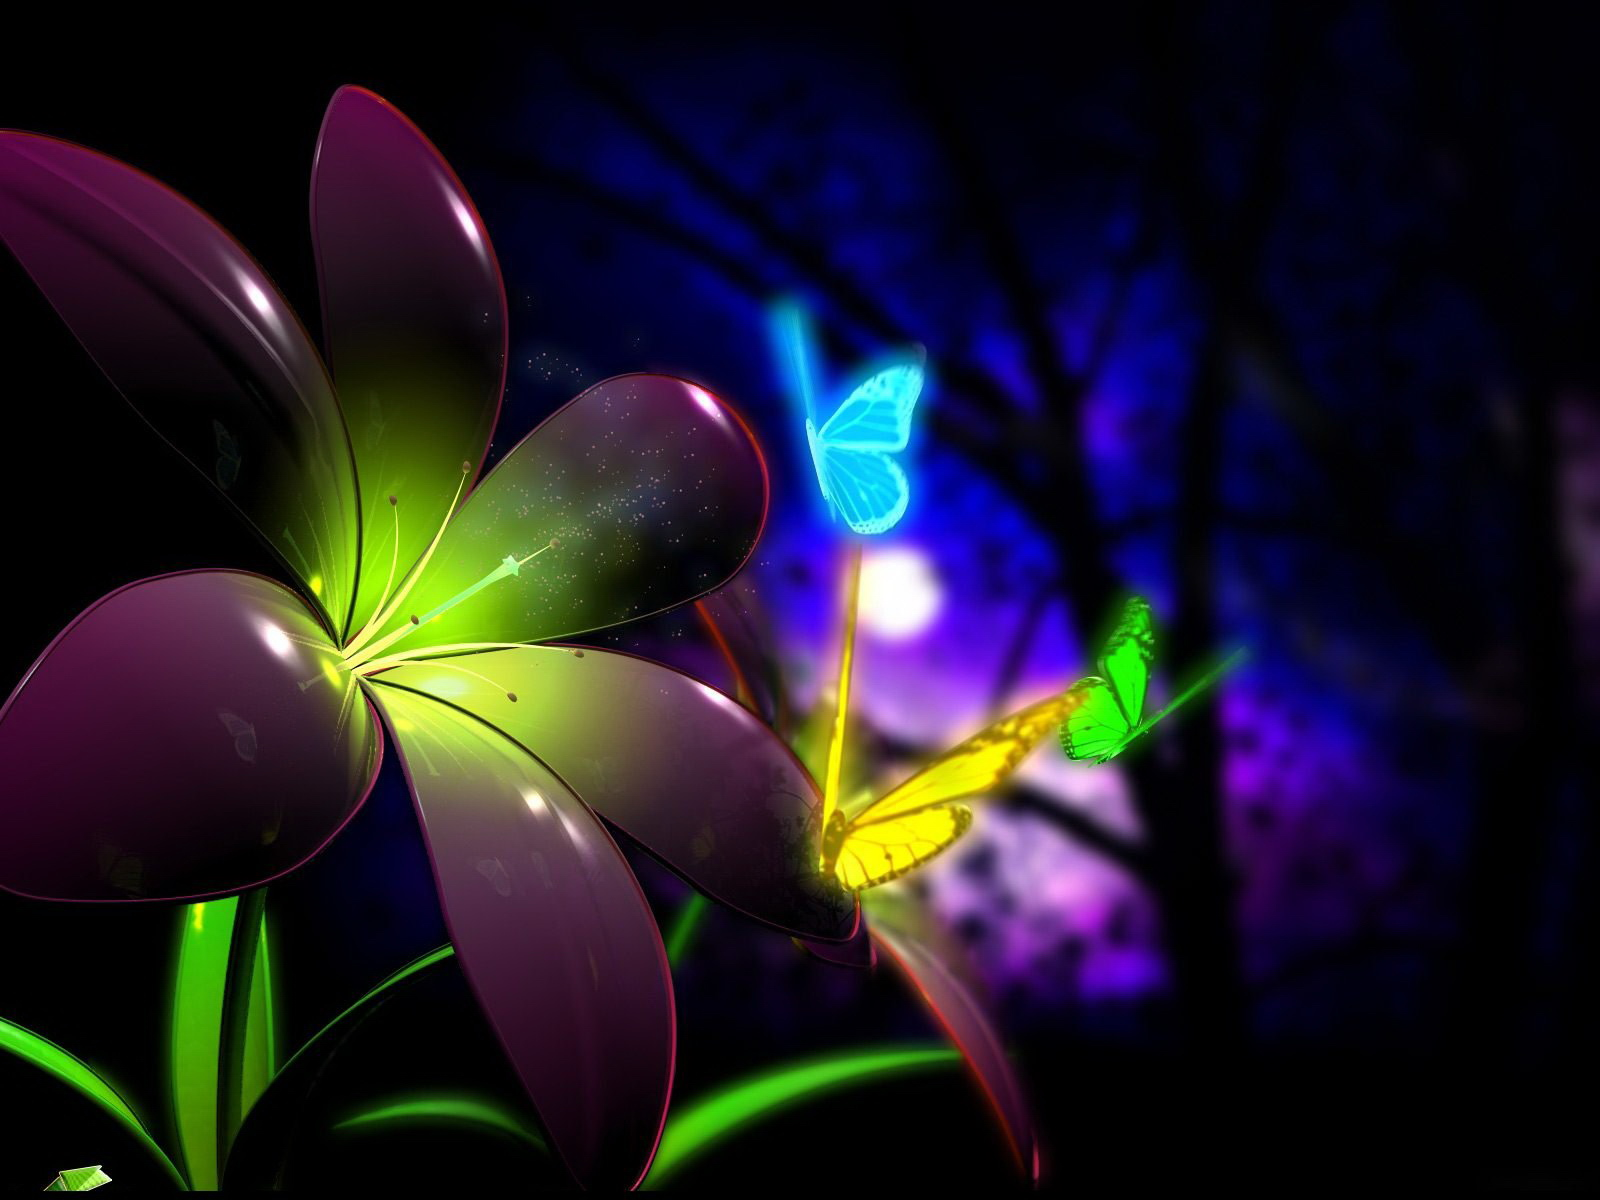 flower wallpaper 3d 16 desktop background - hdflowerwallpaper